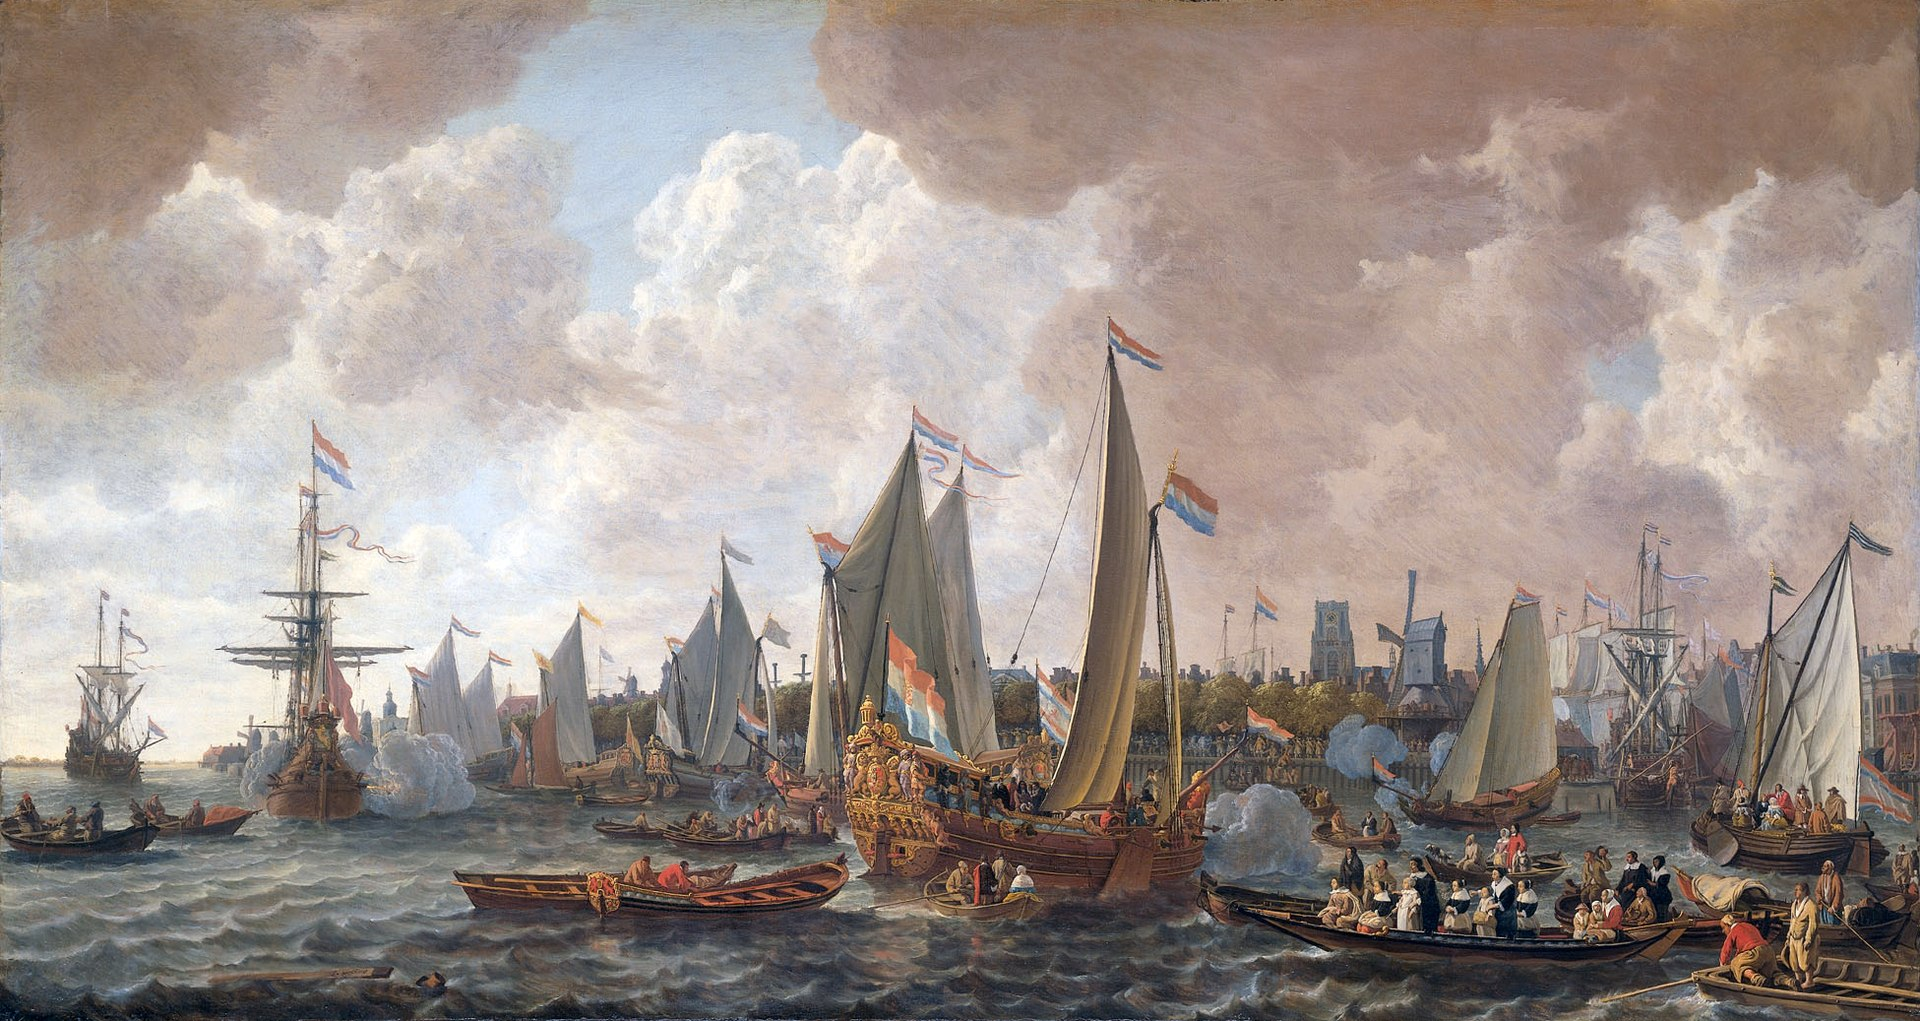 Seascape of vessels along a low-lying coastline